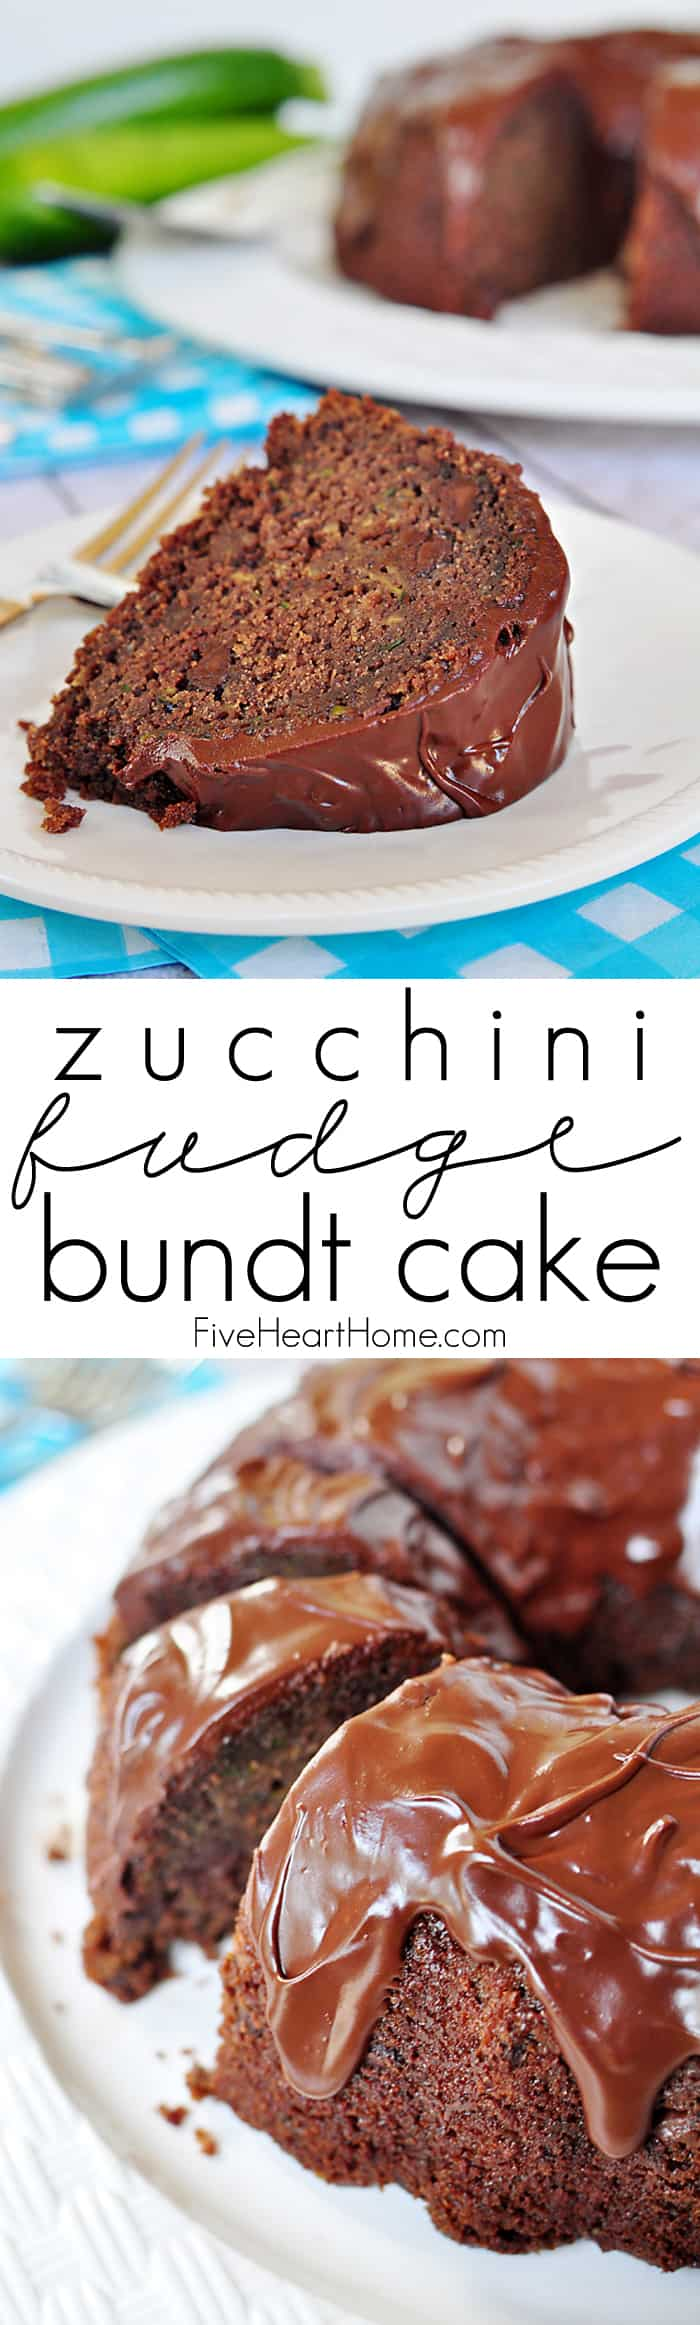 Zucchini Fudge Bundt Cake with Chocolate Glaze Collage with Text Overlay